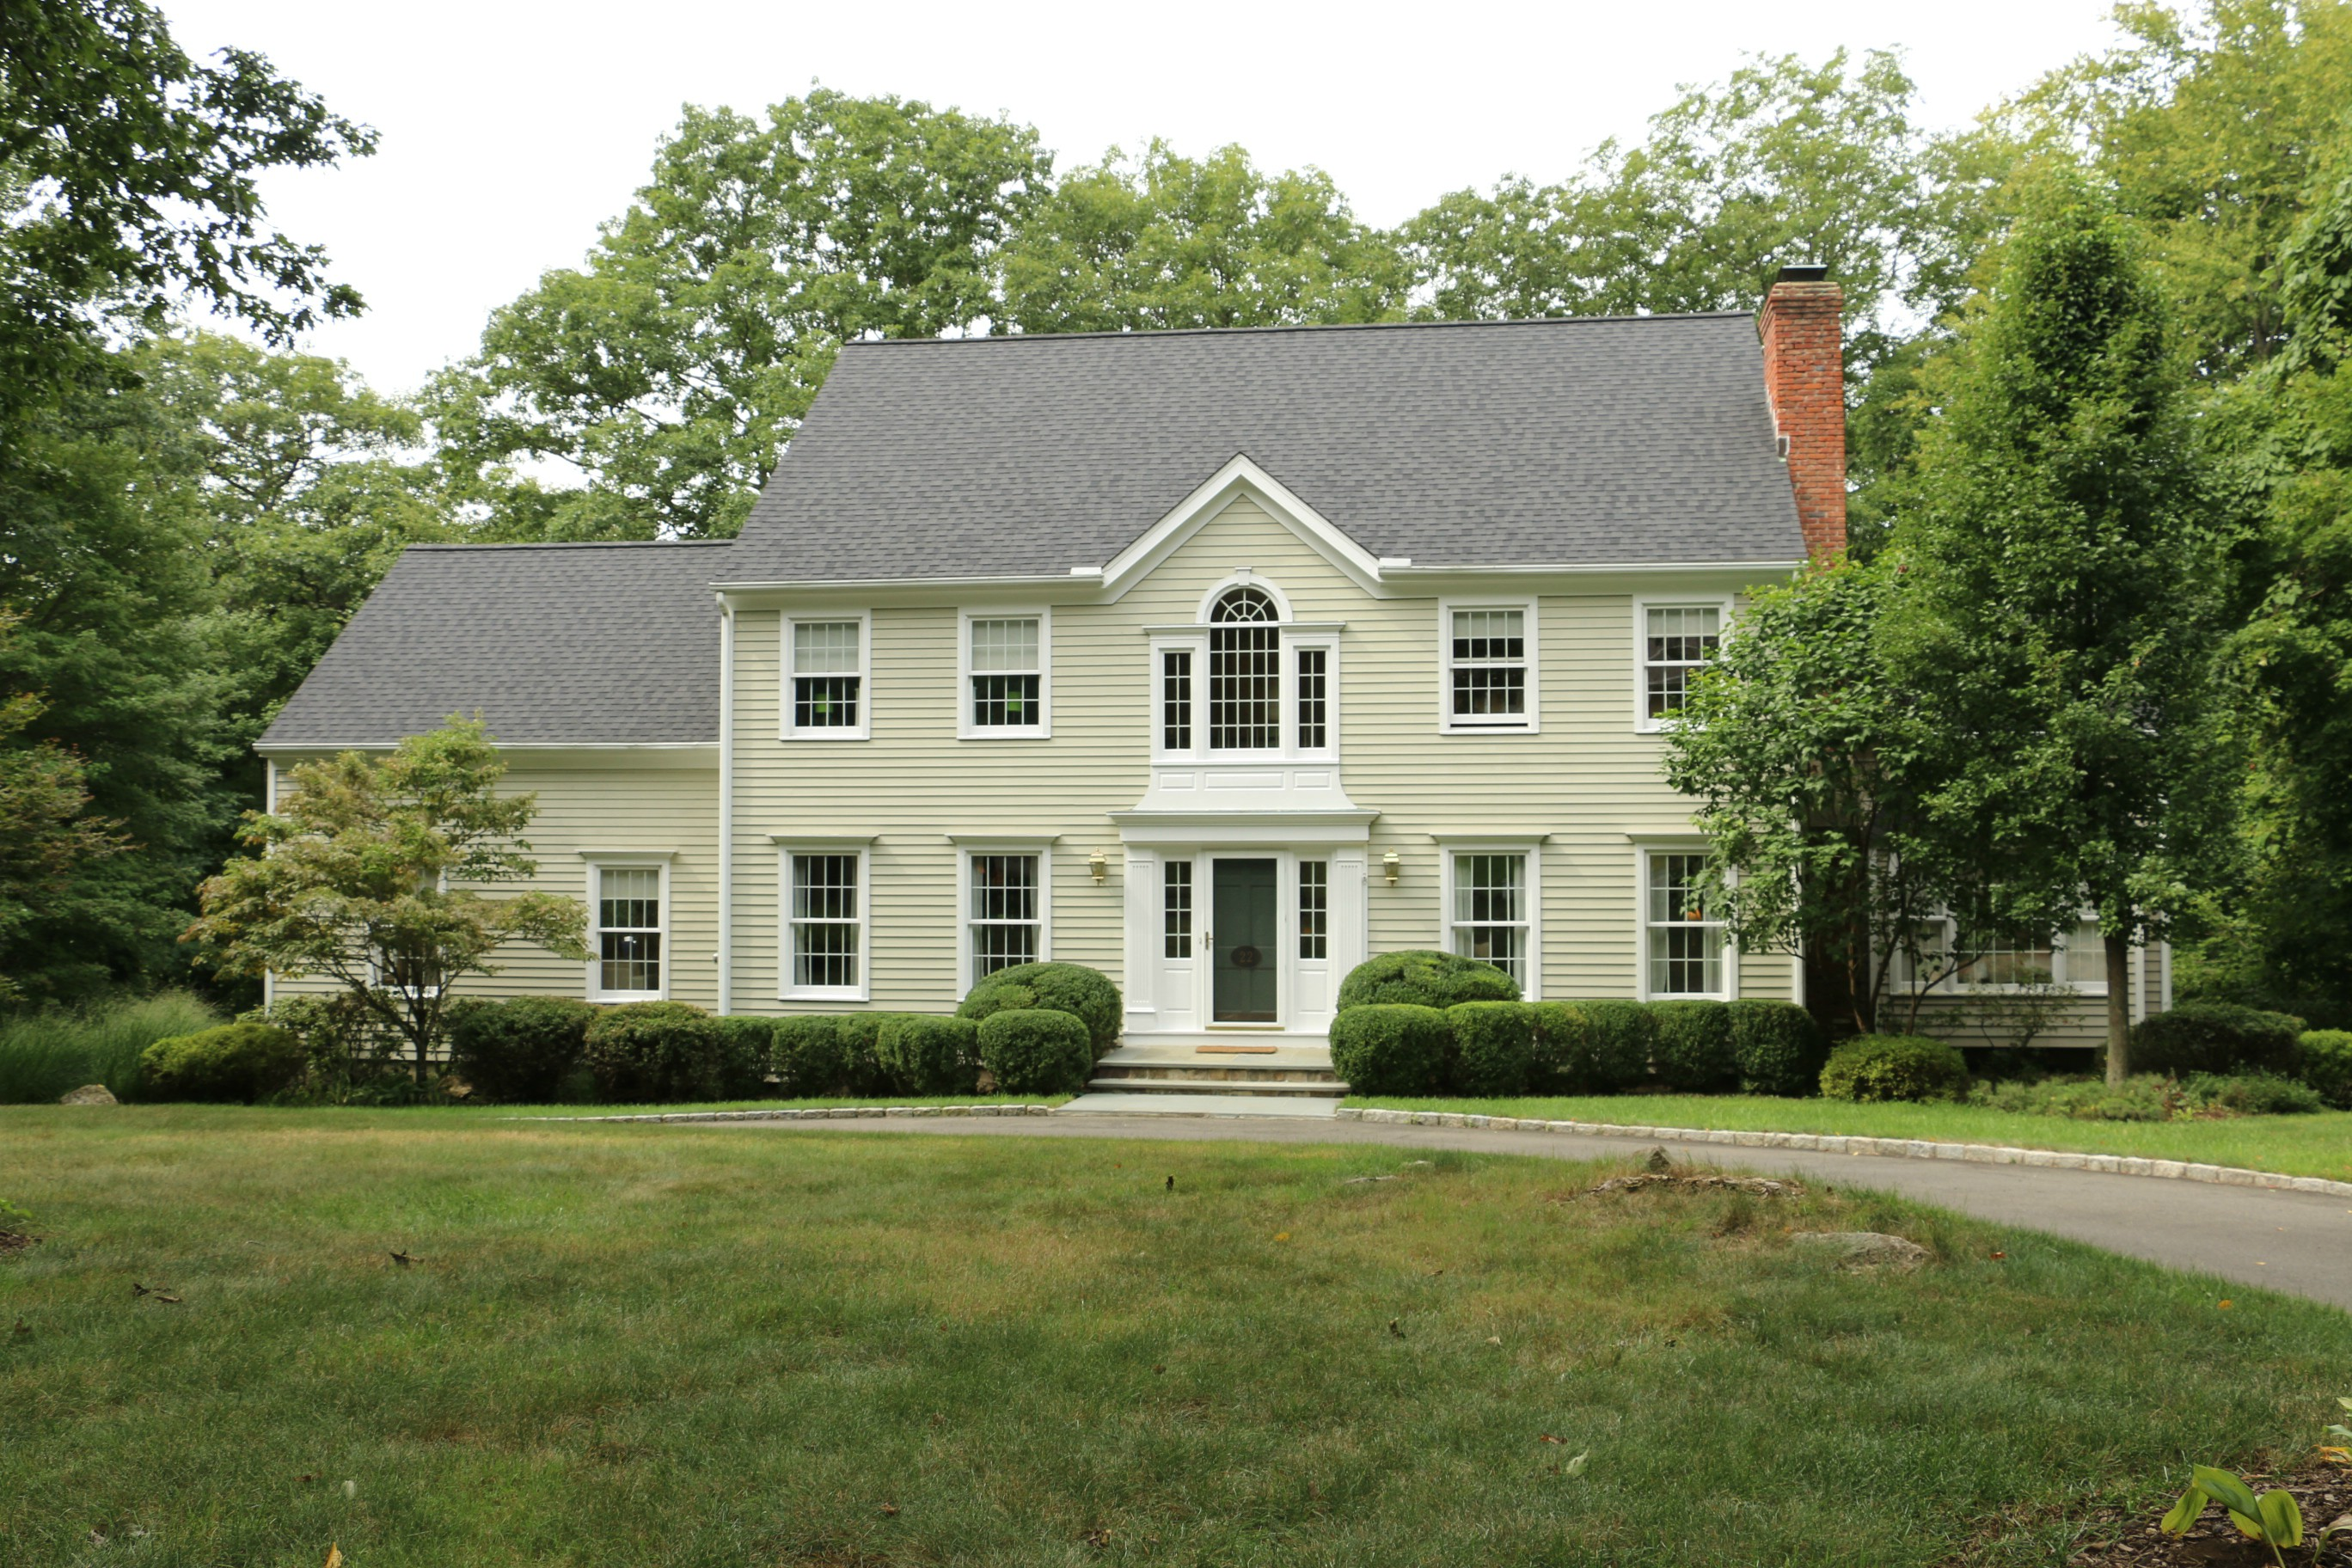 Single Family Home for Sale at Elegant & Updated Colonial 22 Armand Road Ridgefield, Connecticut, 06877 United States